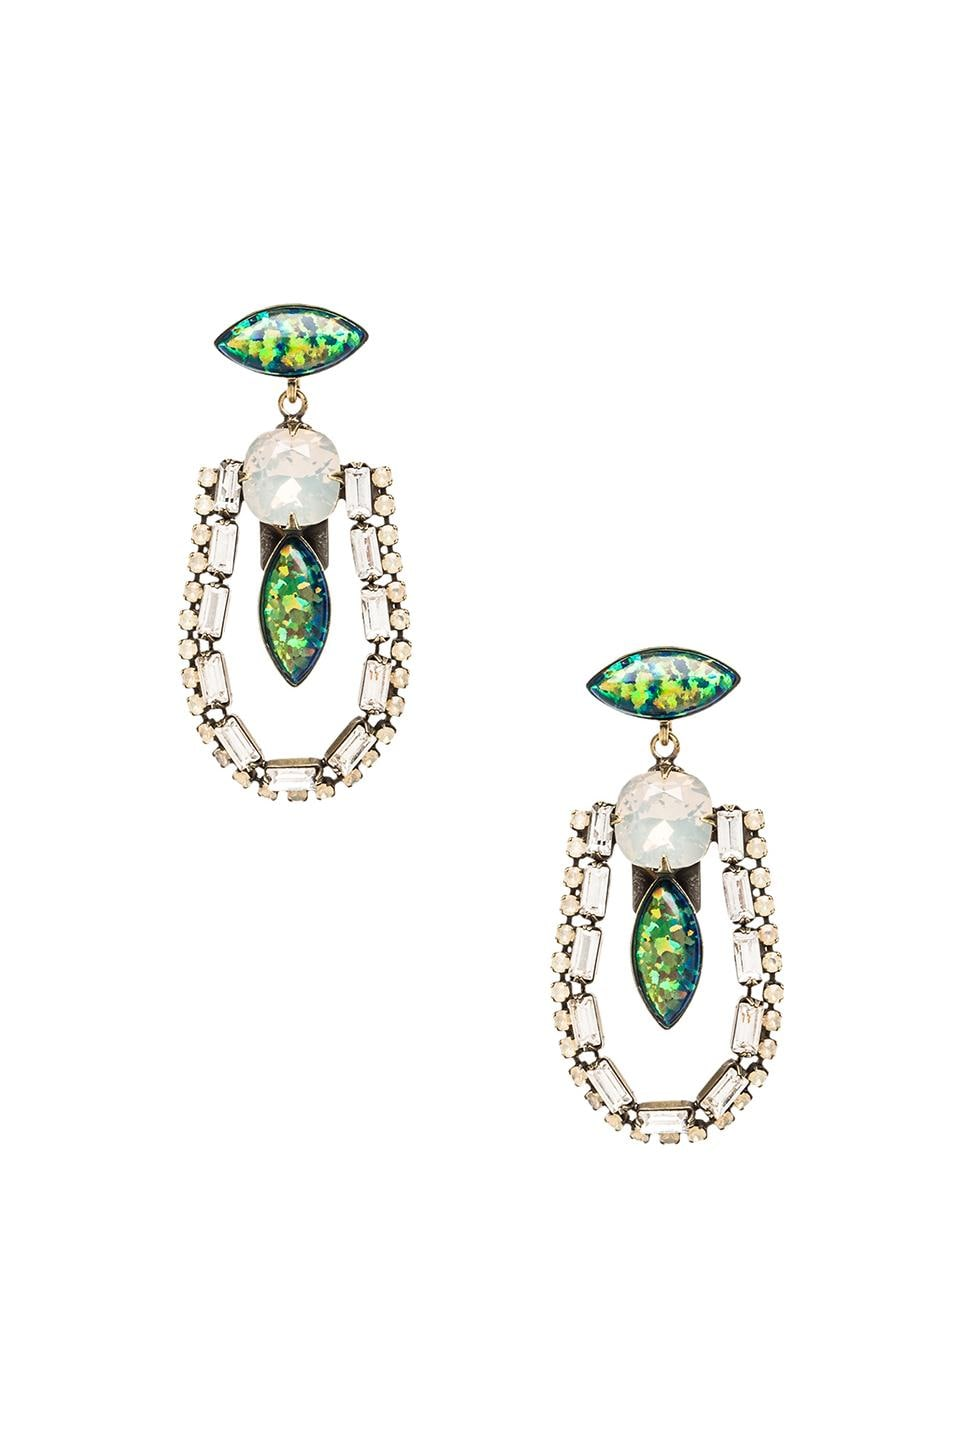 Lionette by Noa Sade Annie Earrings in Green